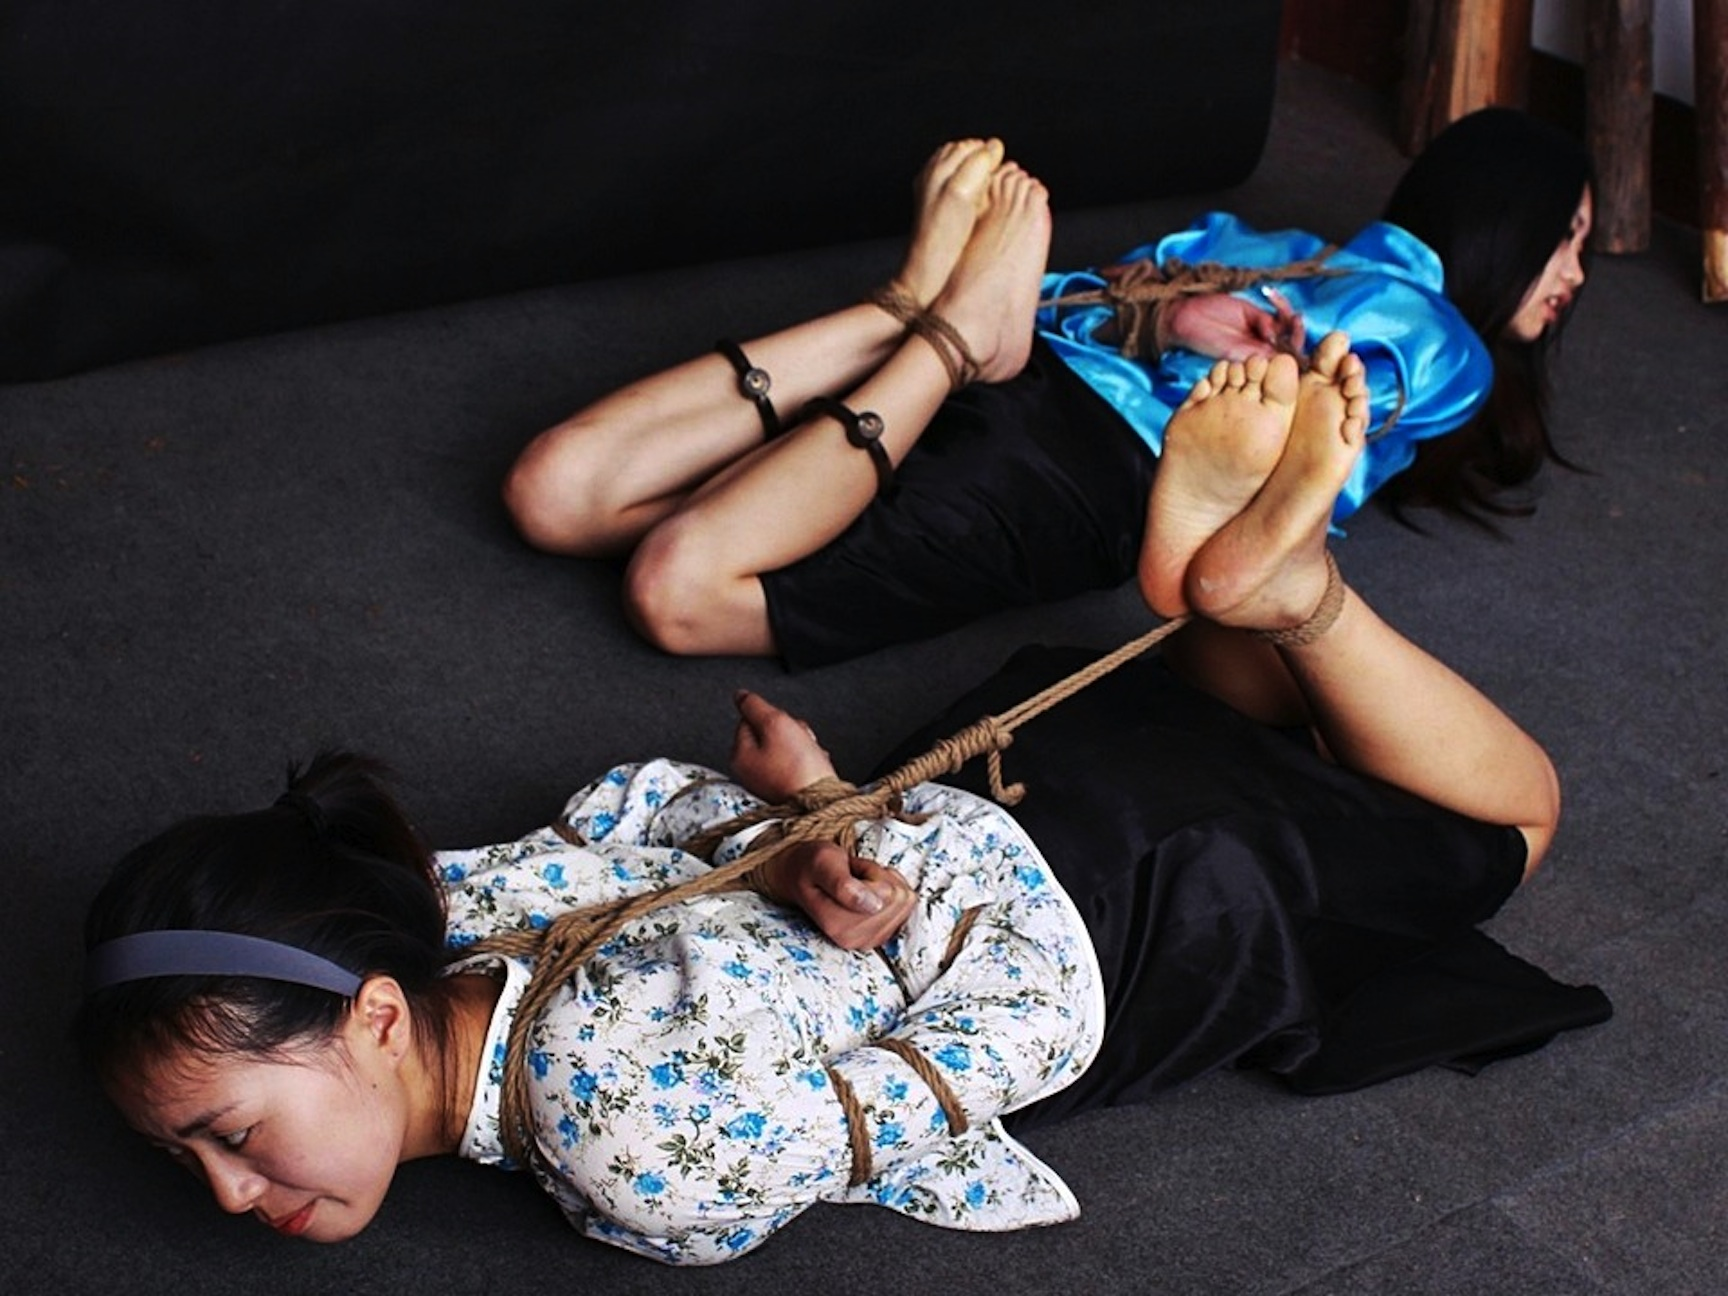 china girl hogtied